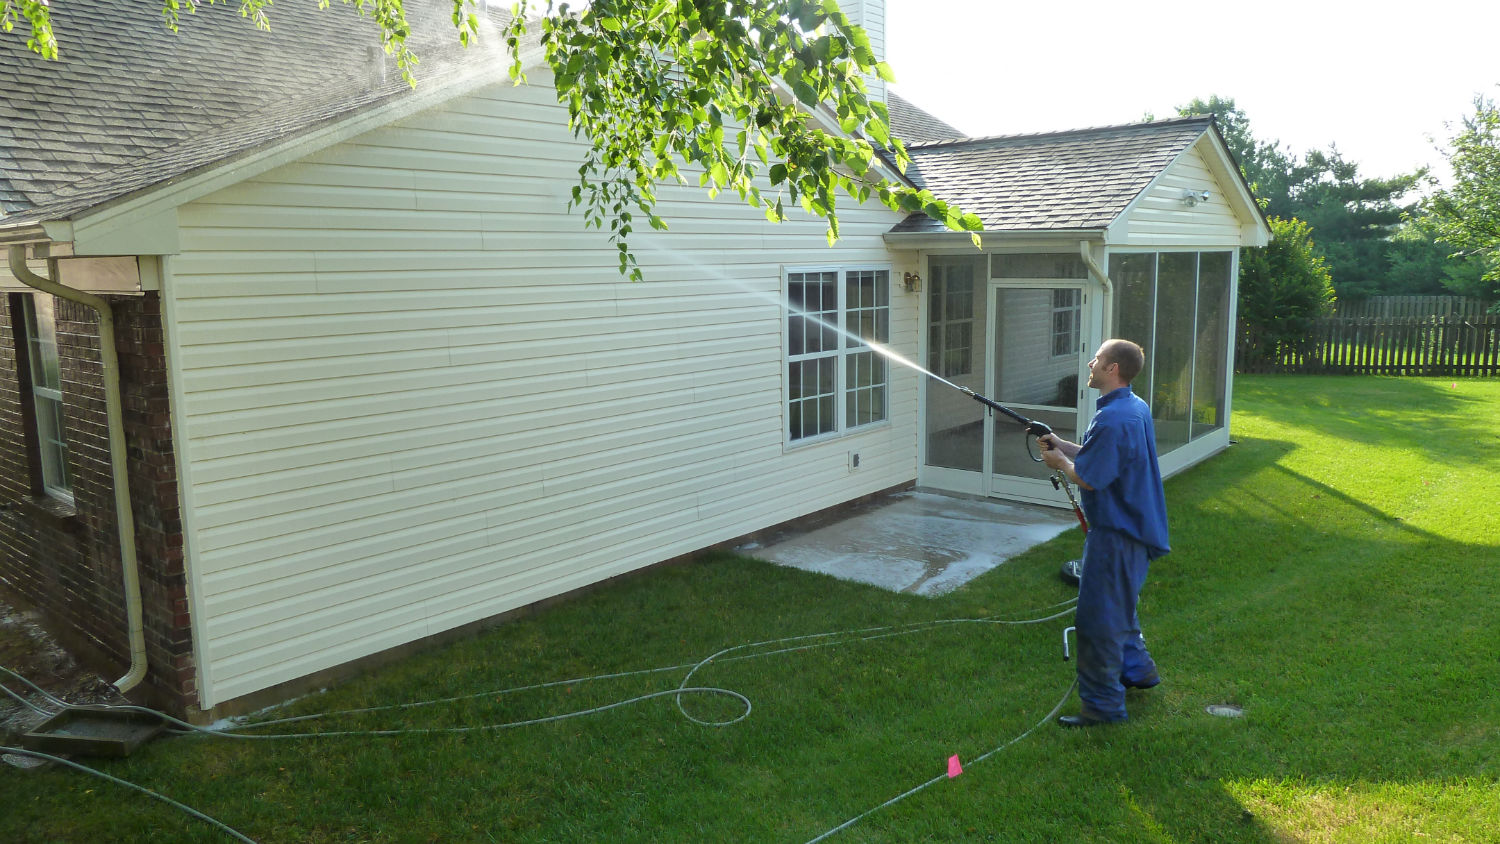 minneapolis house power washing